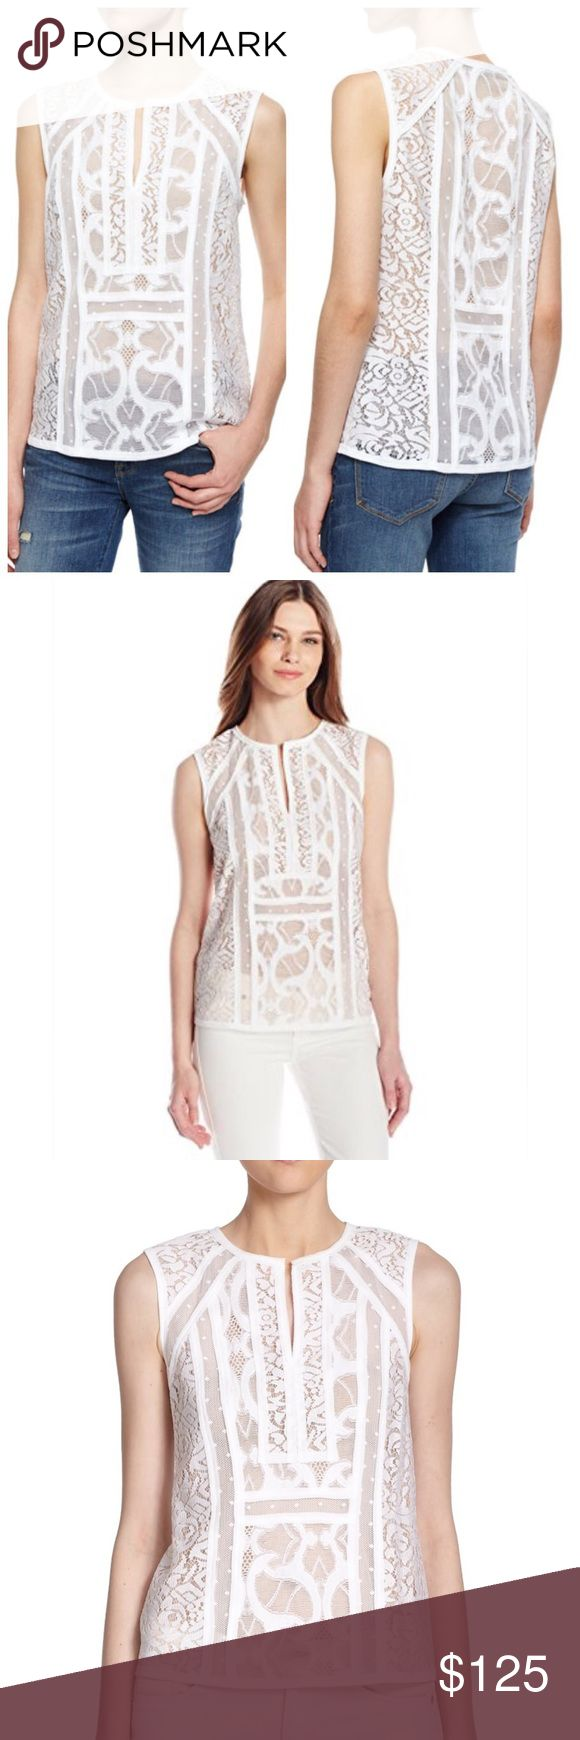 """BCBGMAXAZRIA white lace shear top xs Nwt. """"Camy"""" super cute top! Perfect all year round. Wear it with jeans, slacks or the perfect power skirt. Brand new!! Any questions please ask 😍 BCBGMaxAzria Tops Blouses"""